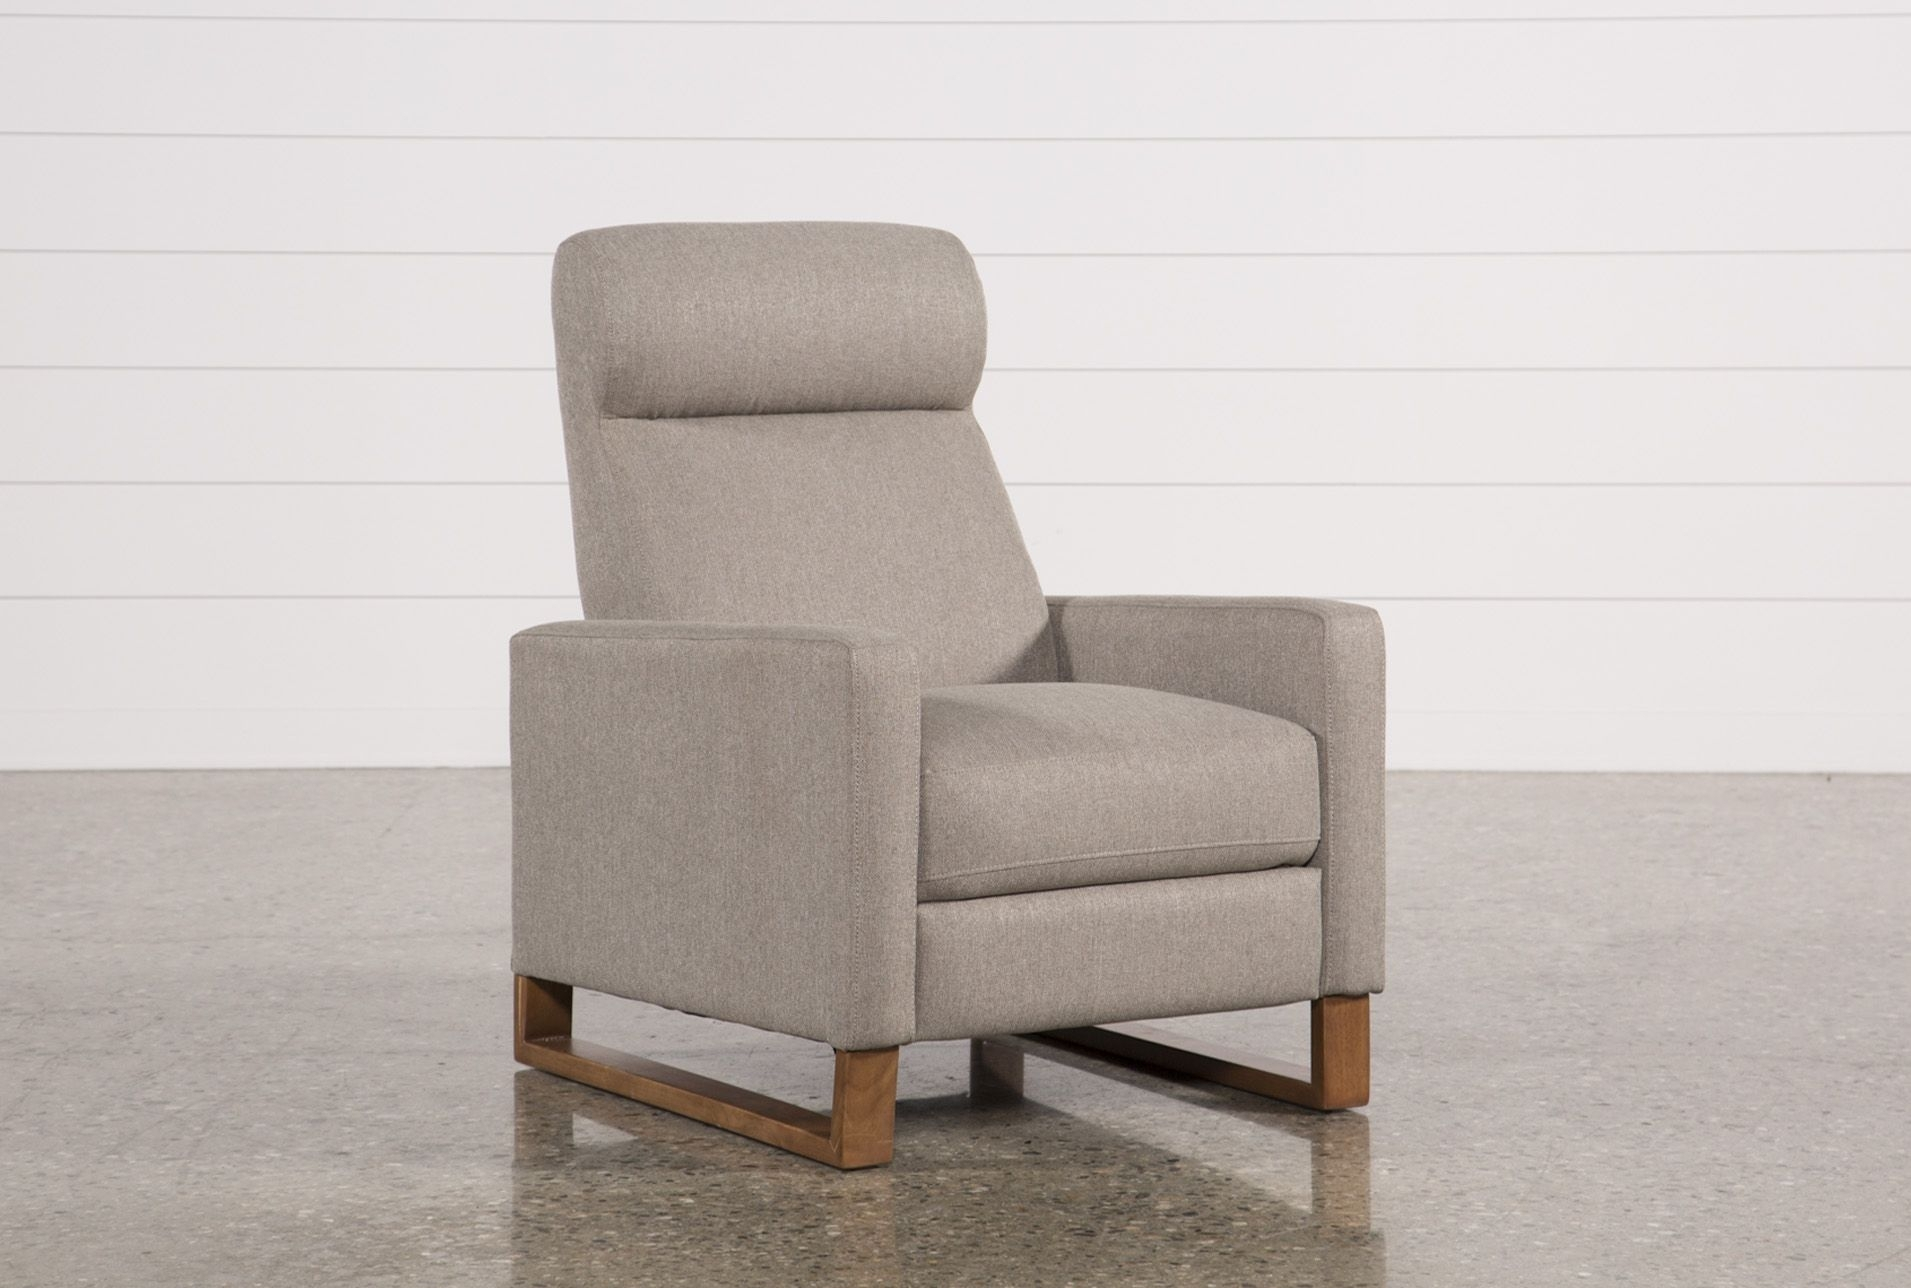 Dane Storm Pressback Recliner | Recliner, Storms And Products With Regard To Denali Charcoal Grey 6 Piece Reclining Sectionals With 2 Power Headrests (Image 12 of 25)